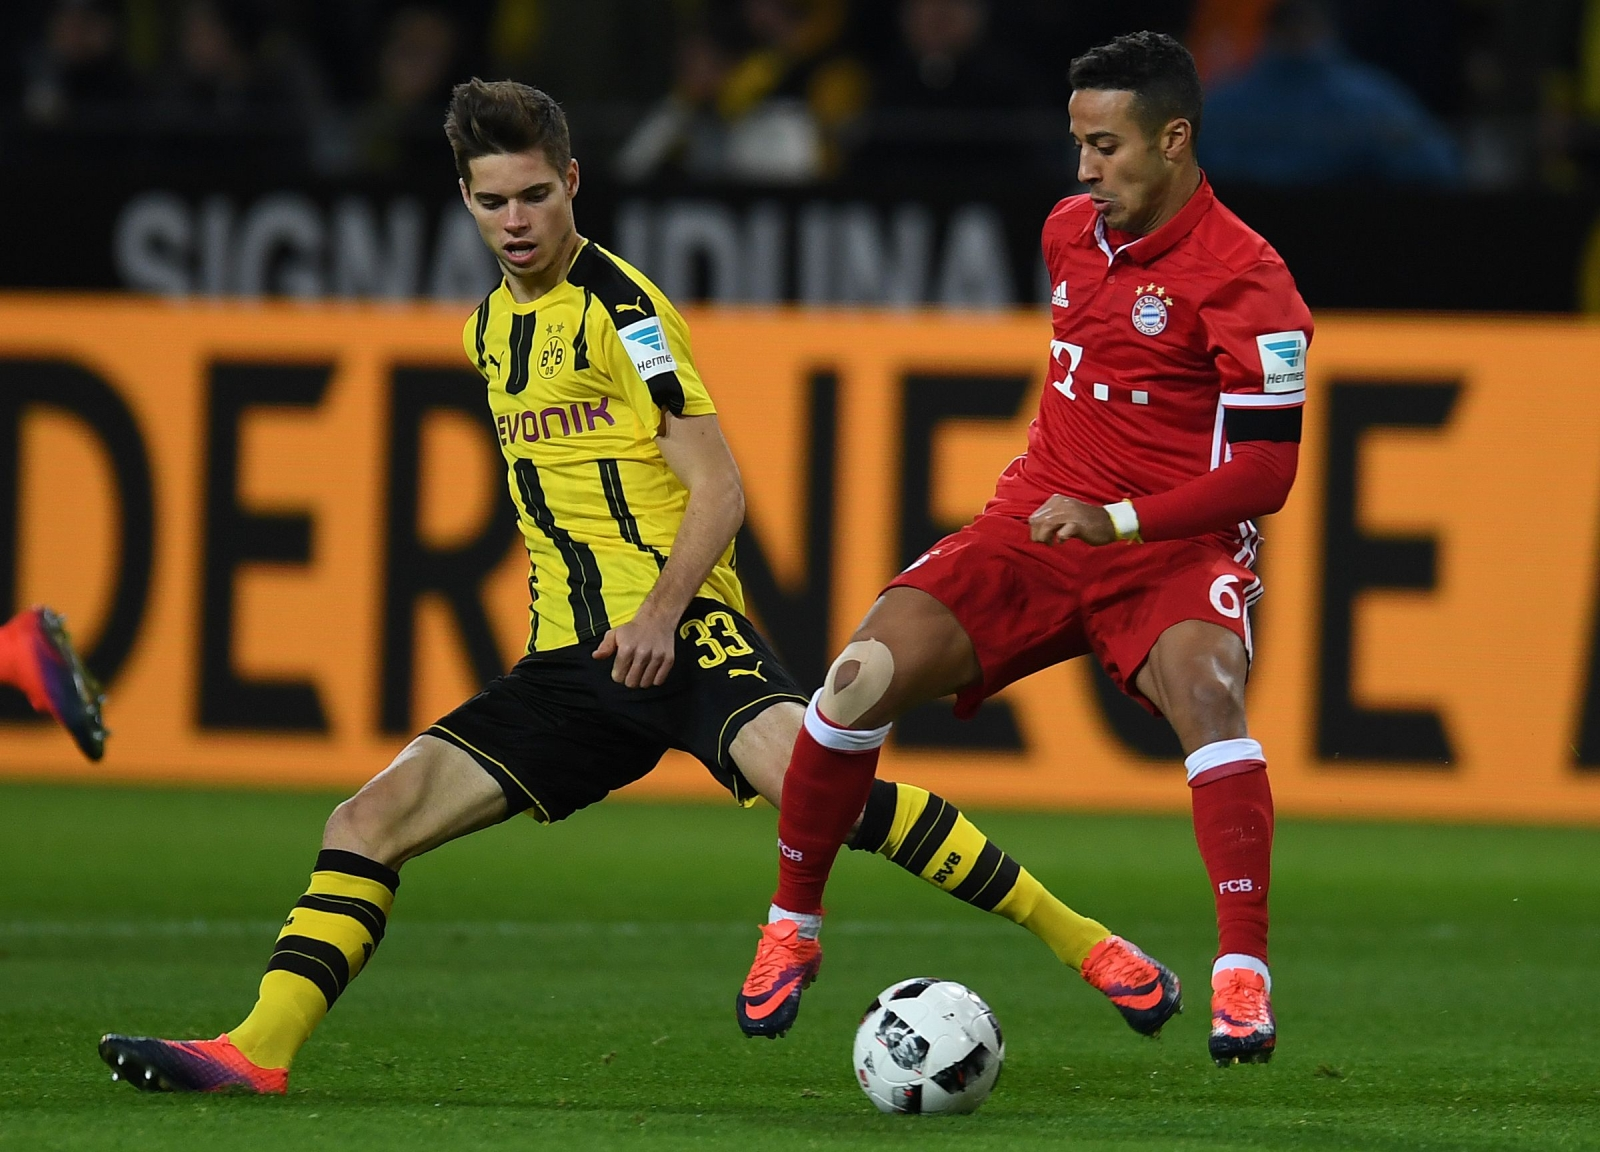 Julian Weigl to Real Madrid Manchester City and Barcelona tar